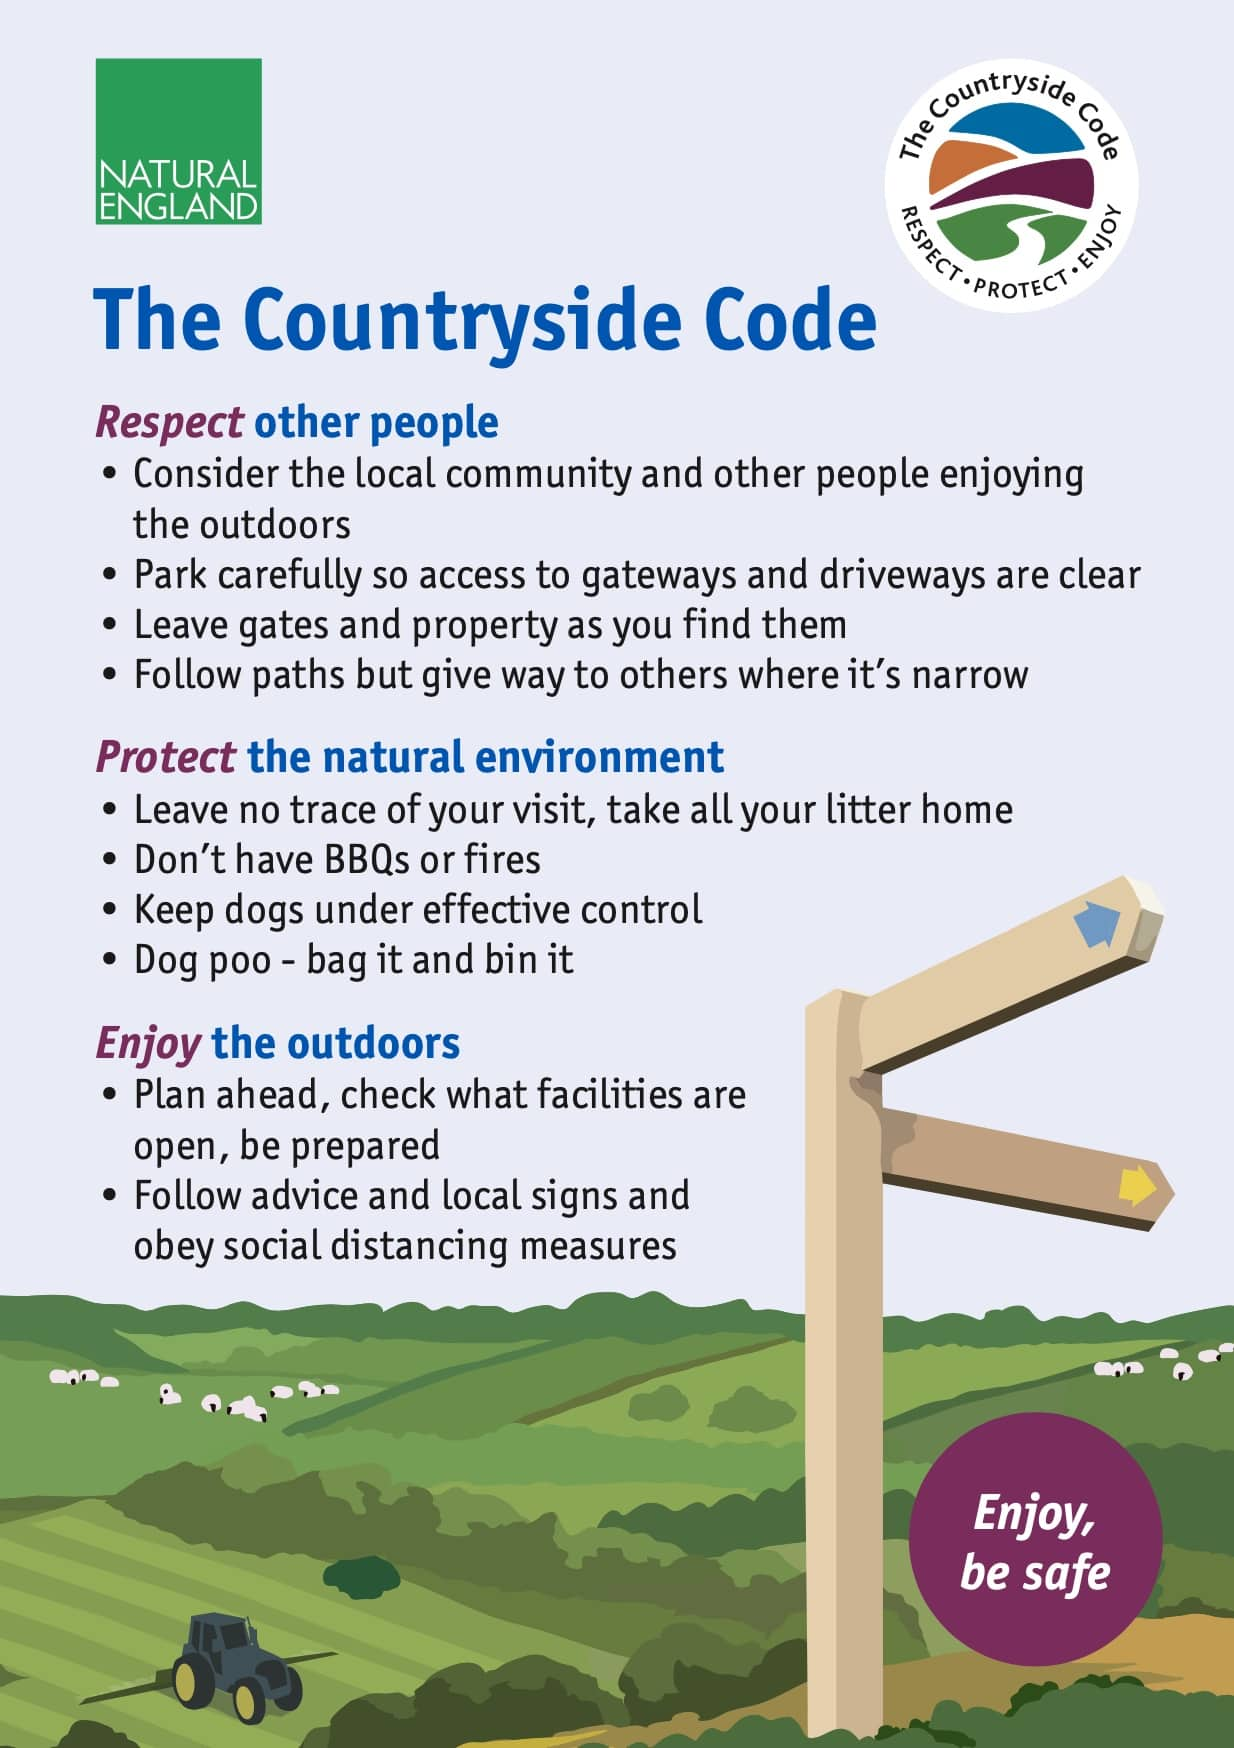 A poster showing the rules of the Countryside Code